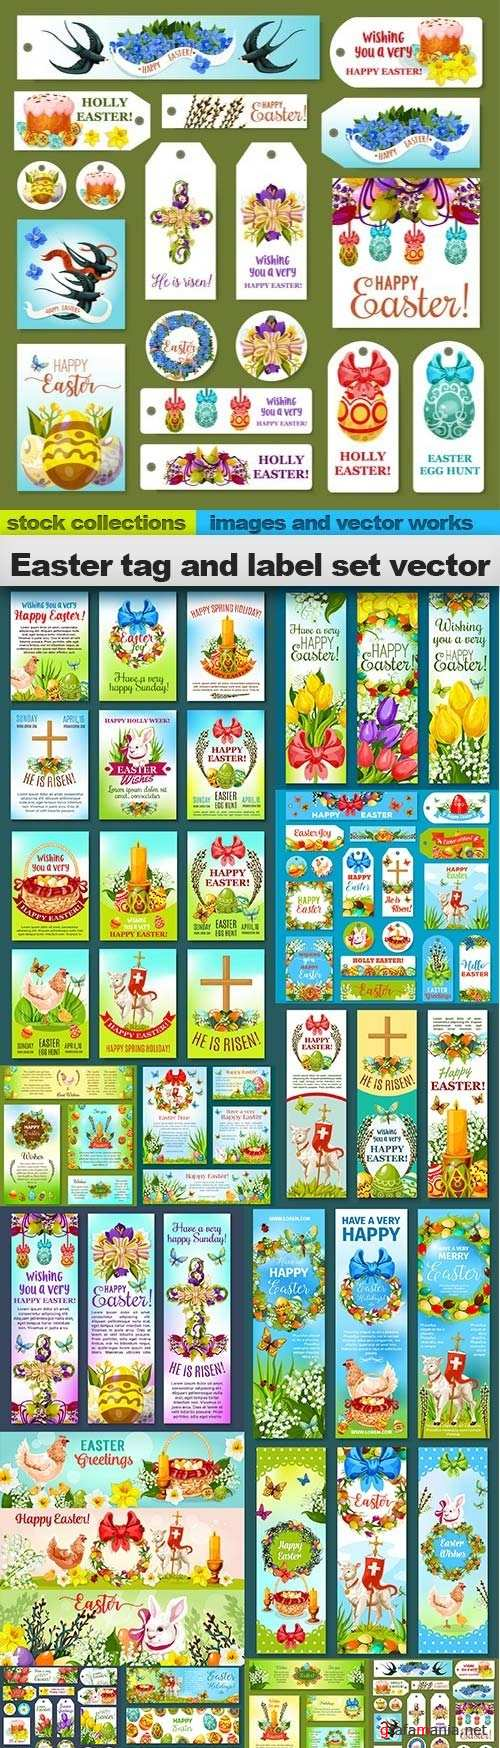 Easter tag and label set vector, 15 x EPS